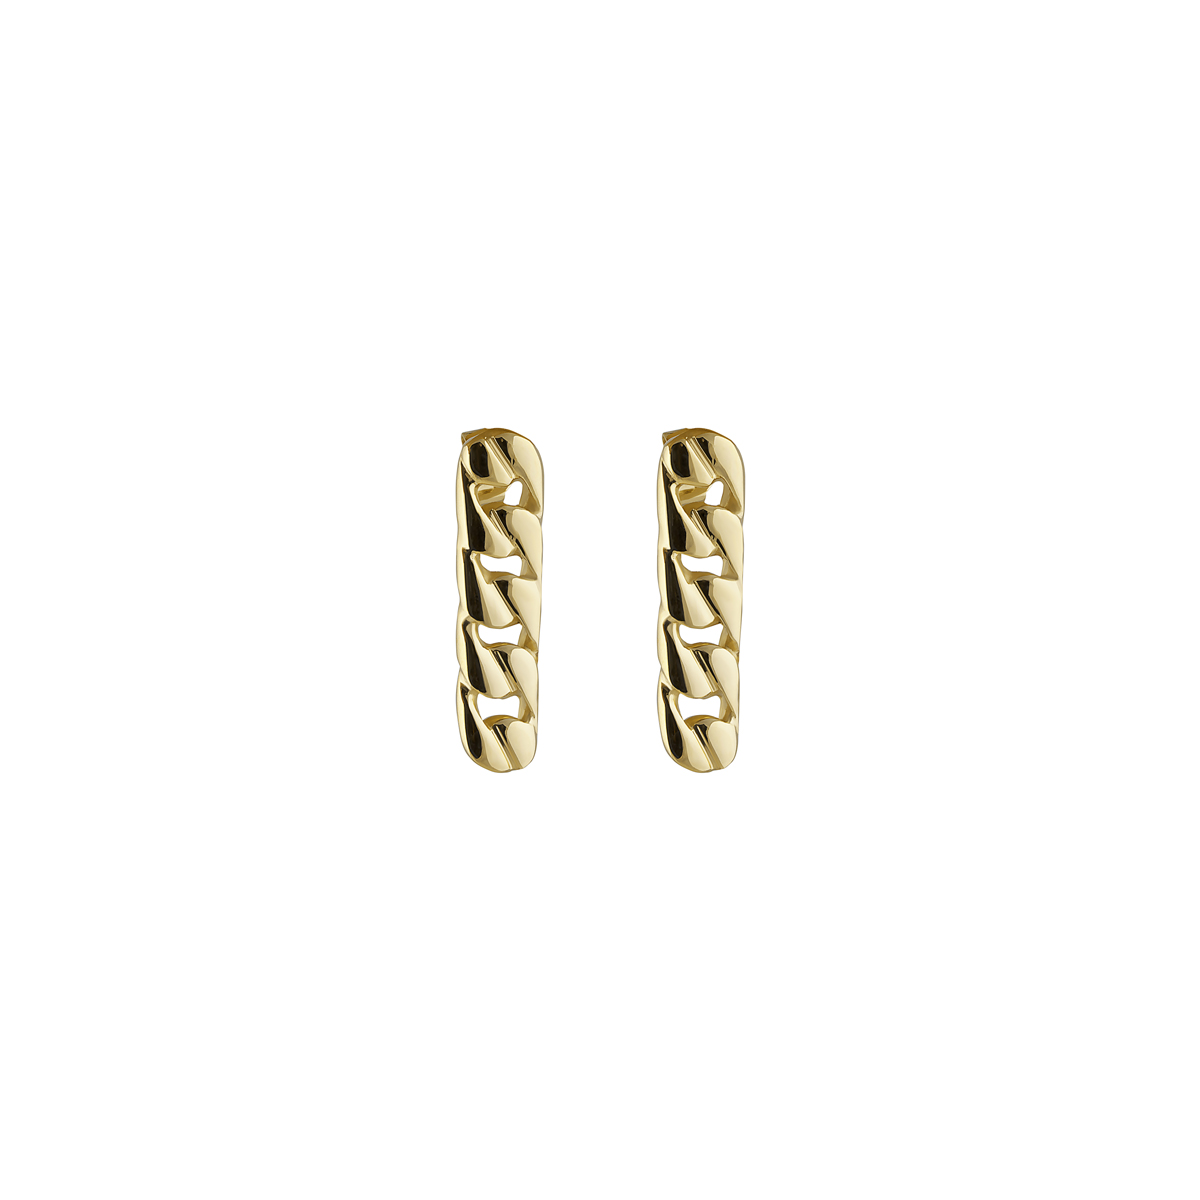 PIN LINK EARRINGS GOLD in the group SHOP / Collections / LINK at EMMA ISRAELSSON (ear091)